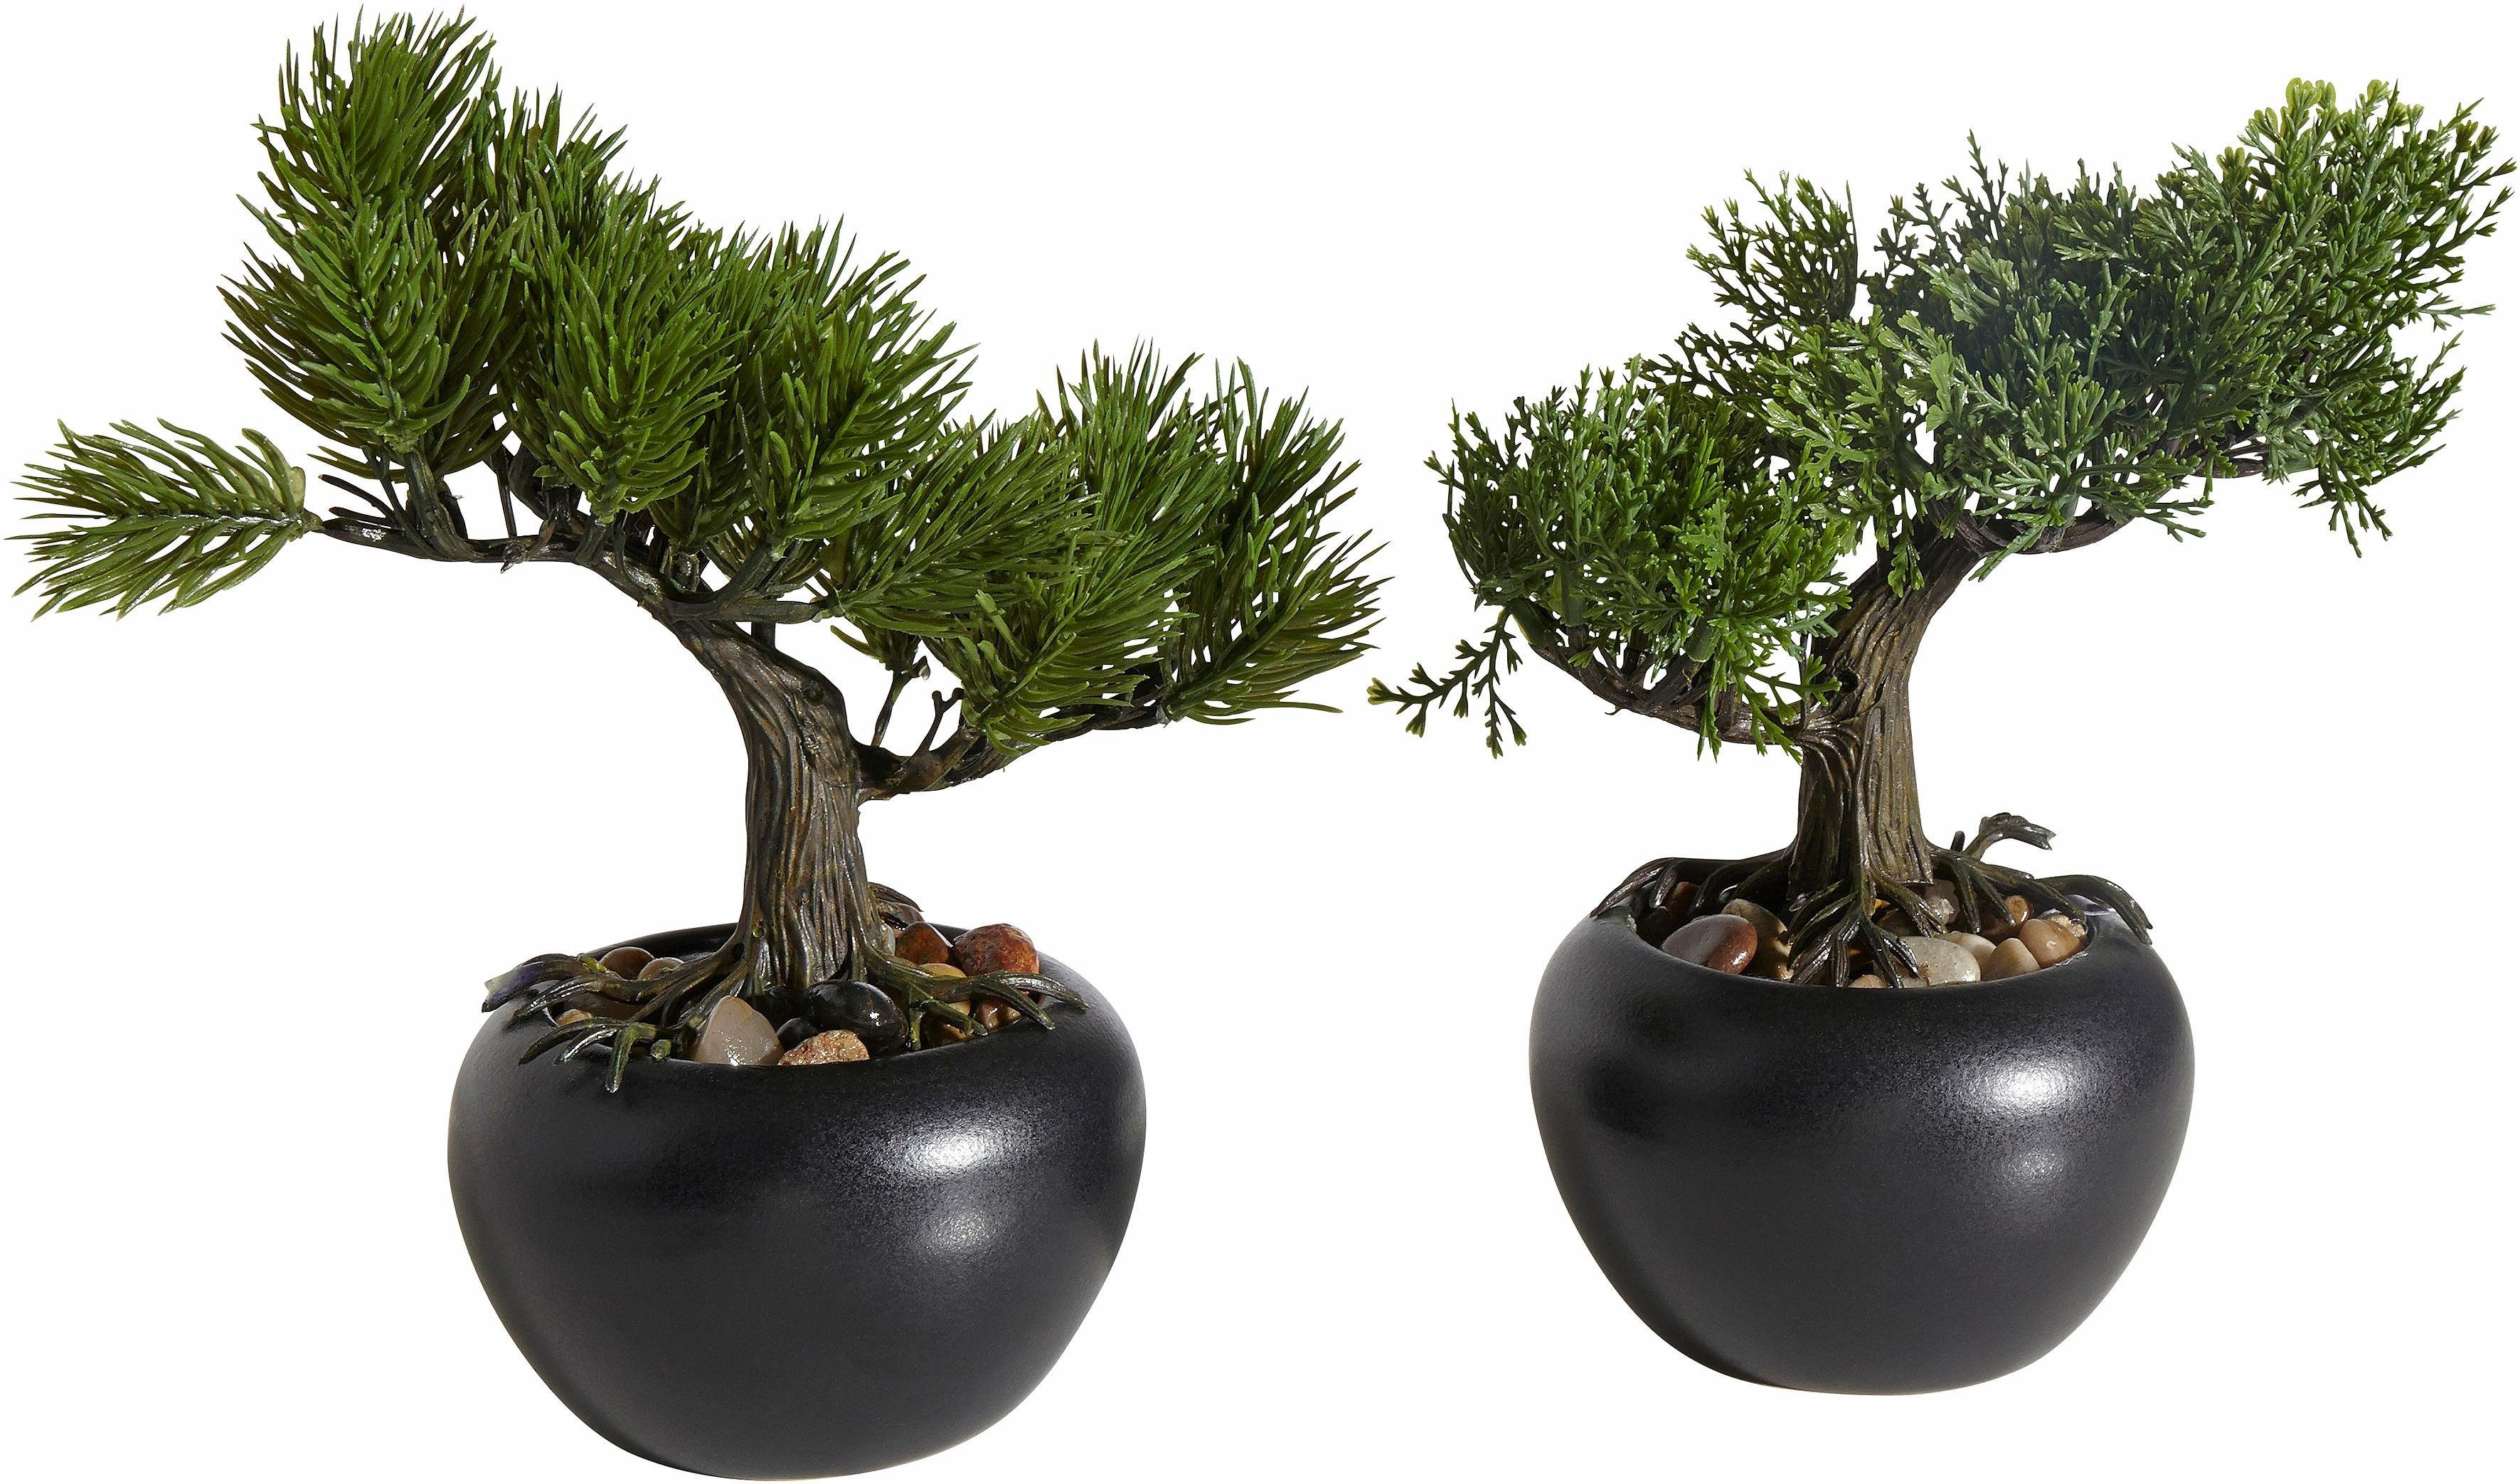 Home affaire Kunstpflanze »Bonsai« (2er Set)